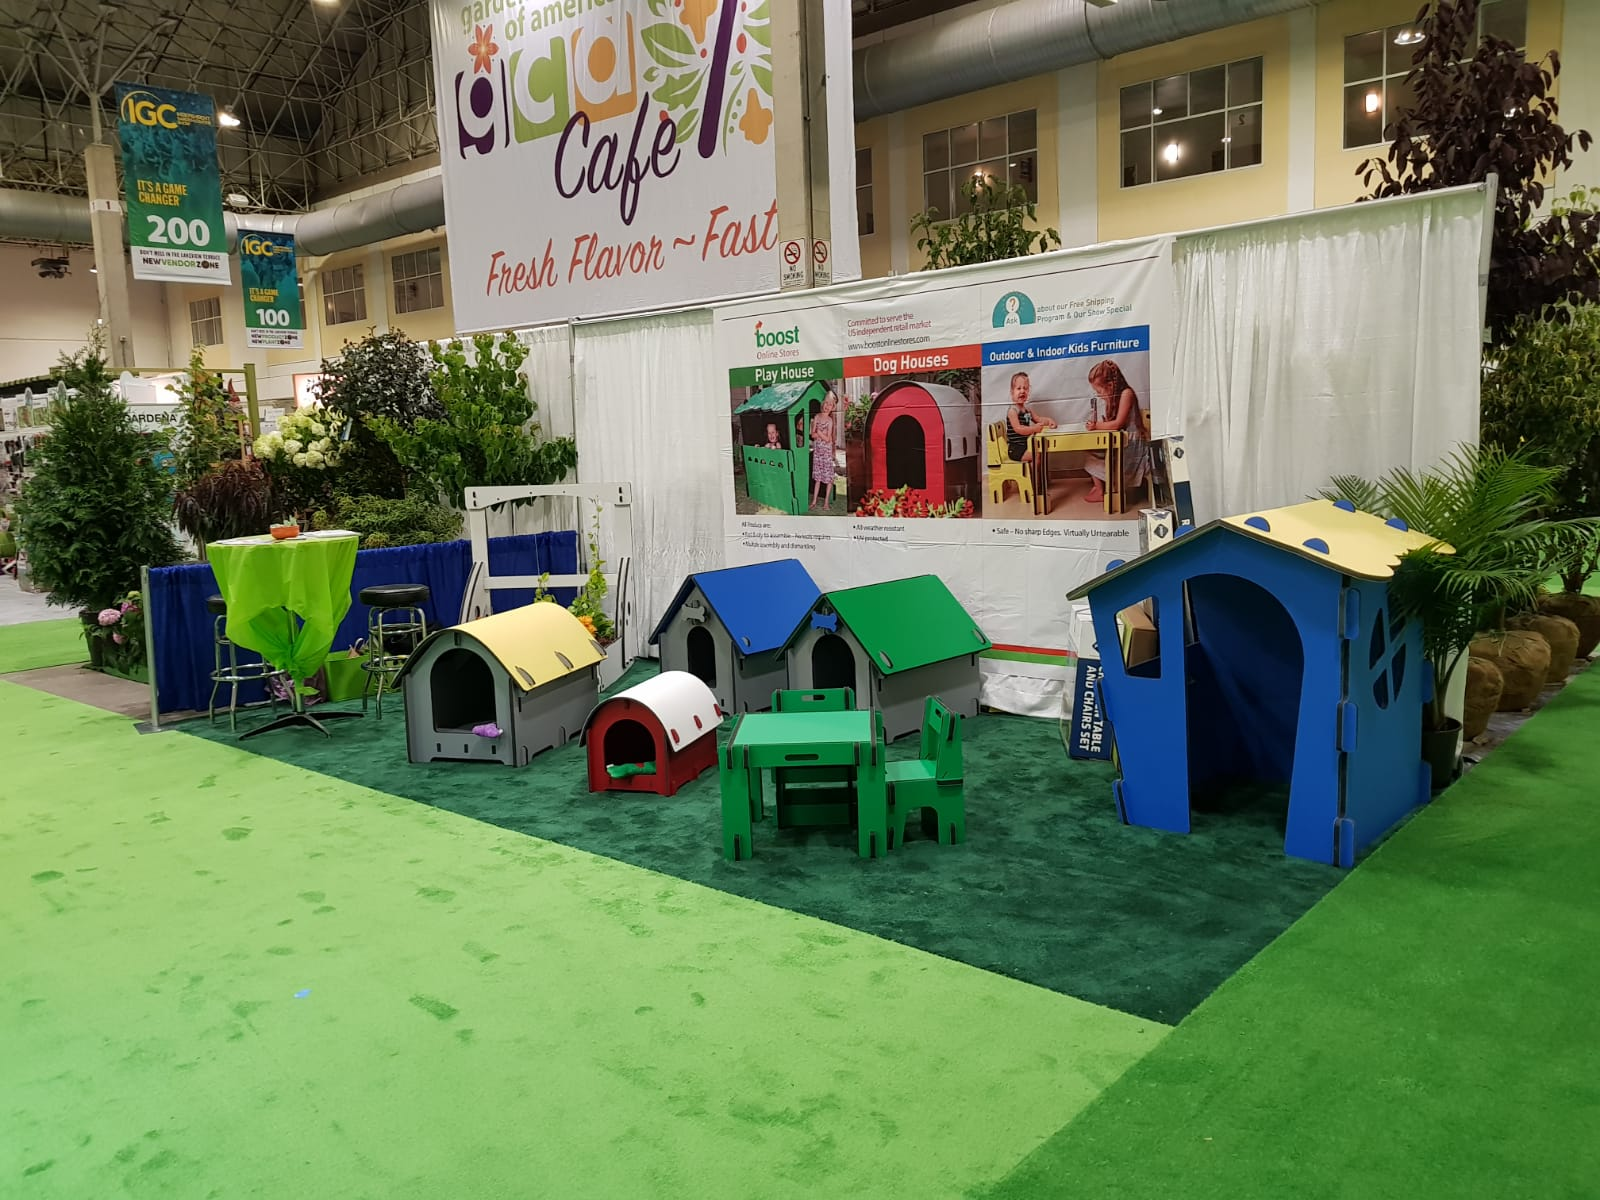 All Garden Products - Home&Garden Show (Double click for better view)